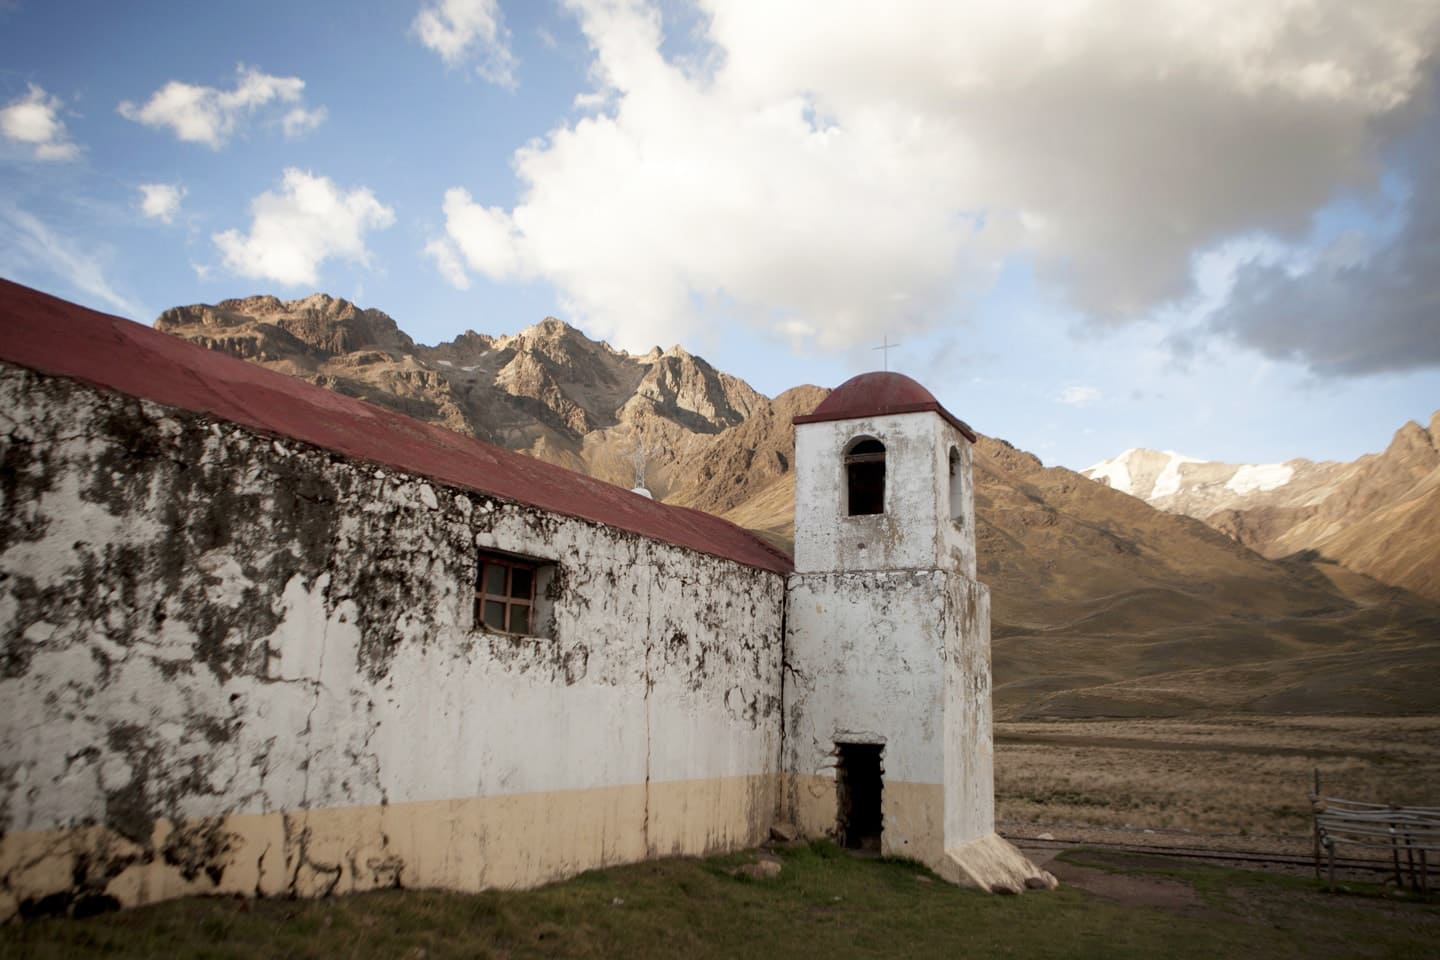 Church - Architecture- Abra La Raya - Chivay to Cusco Route with 4M Express bus Peru